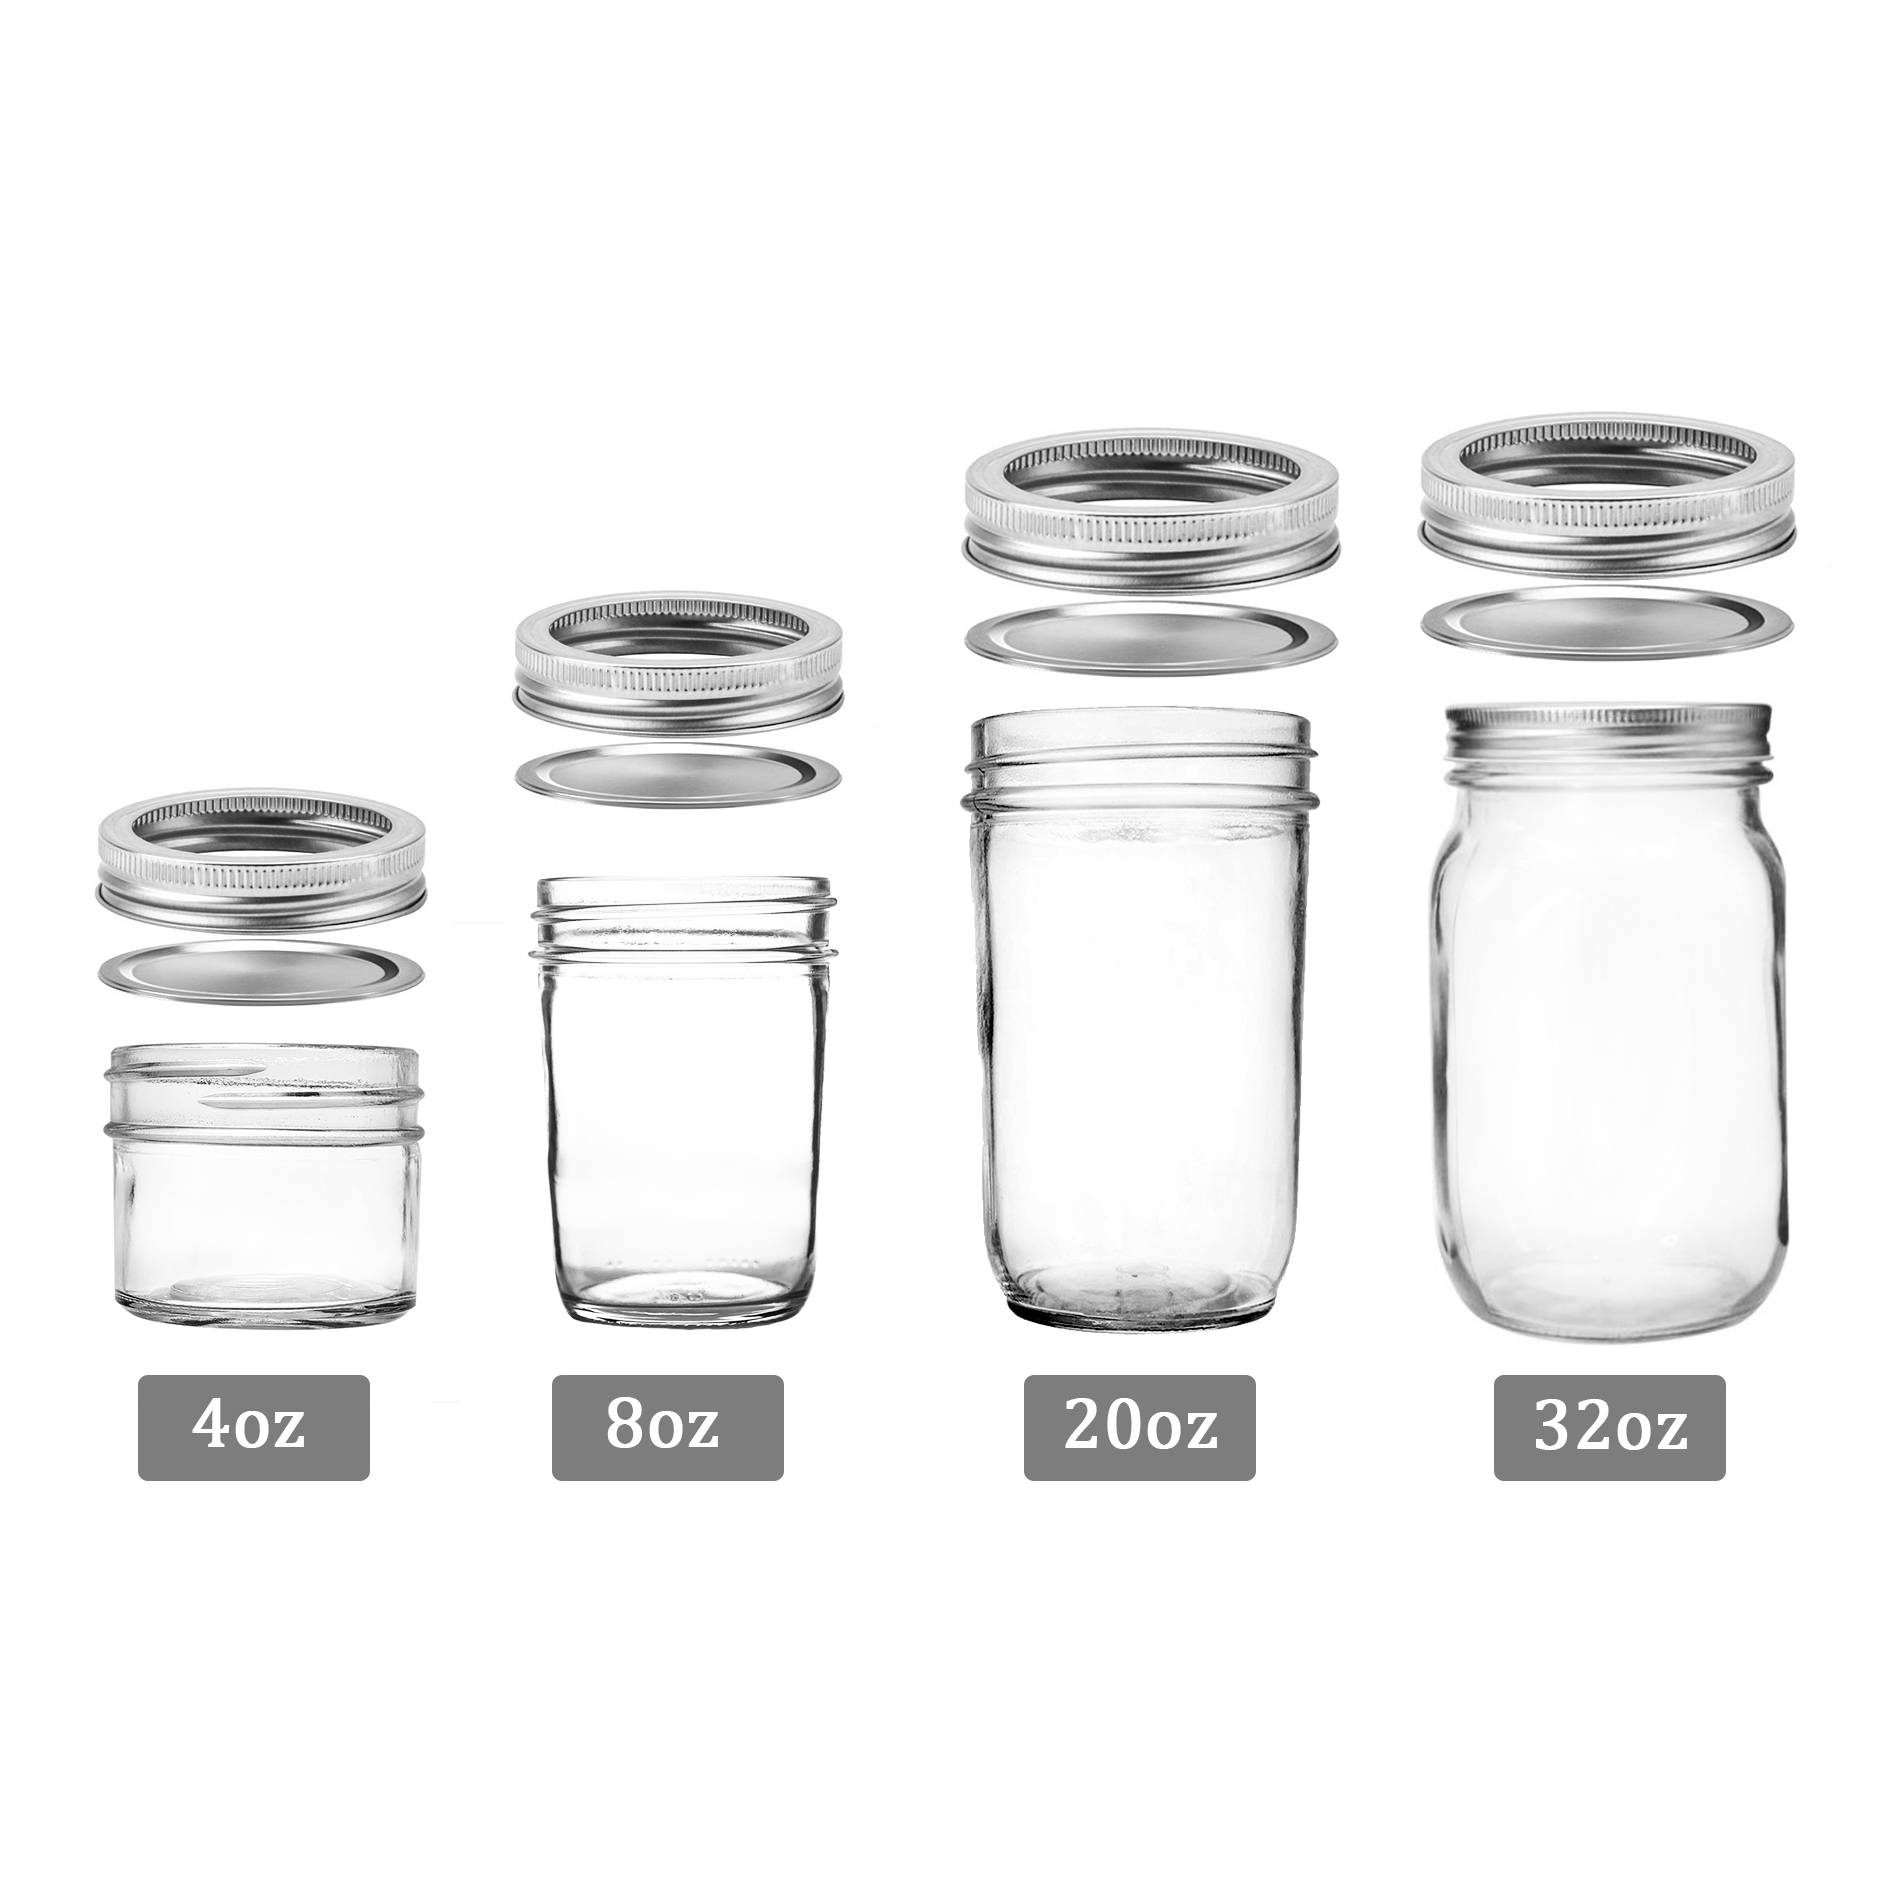 Mason Jar 4oz 8oz 20oz 32oz for Honey Jam with Metal Lid Featured Image